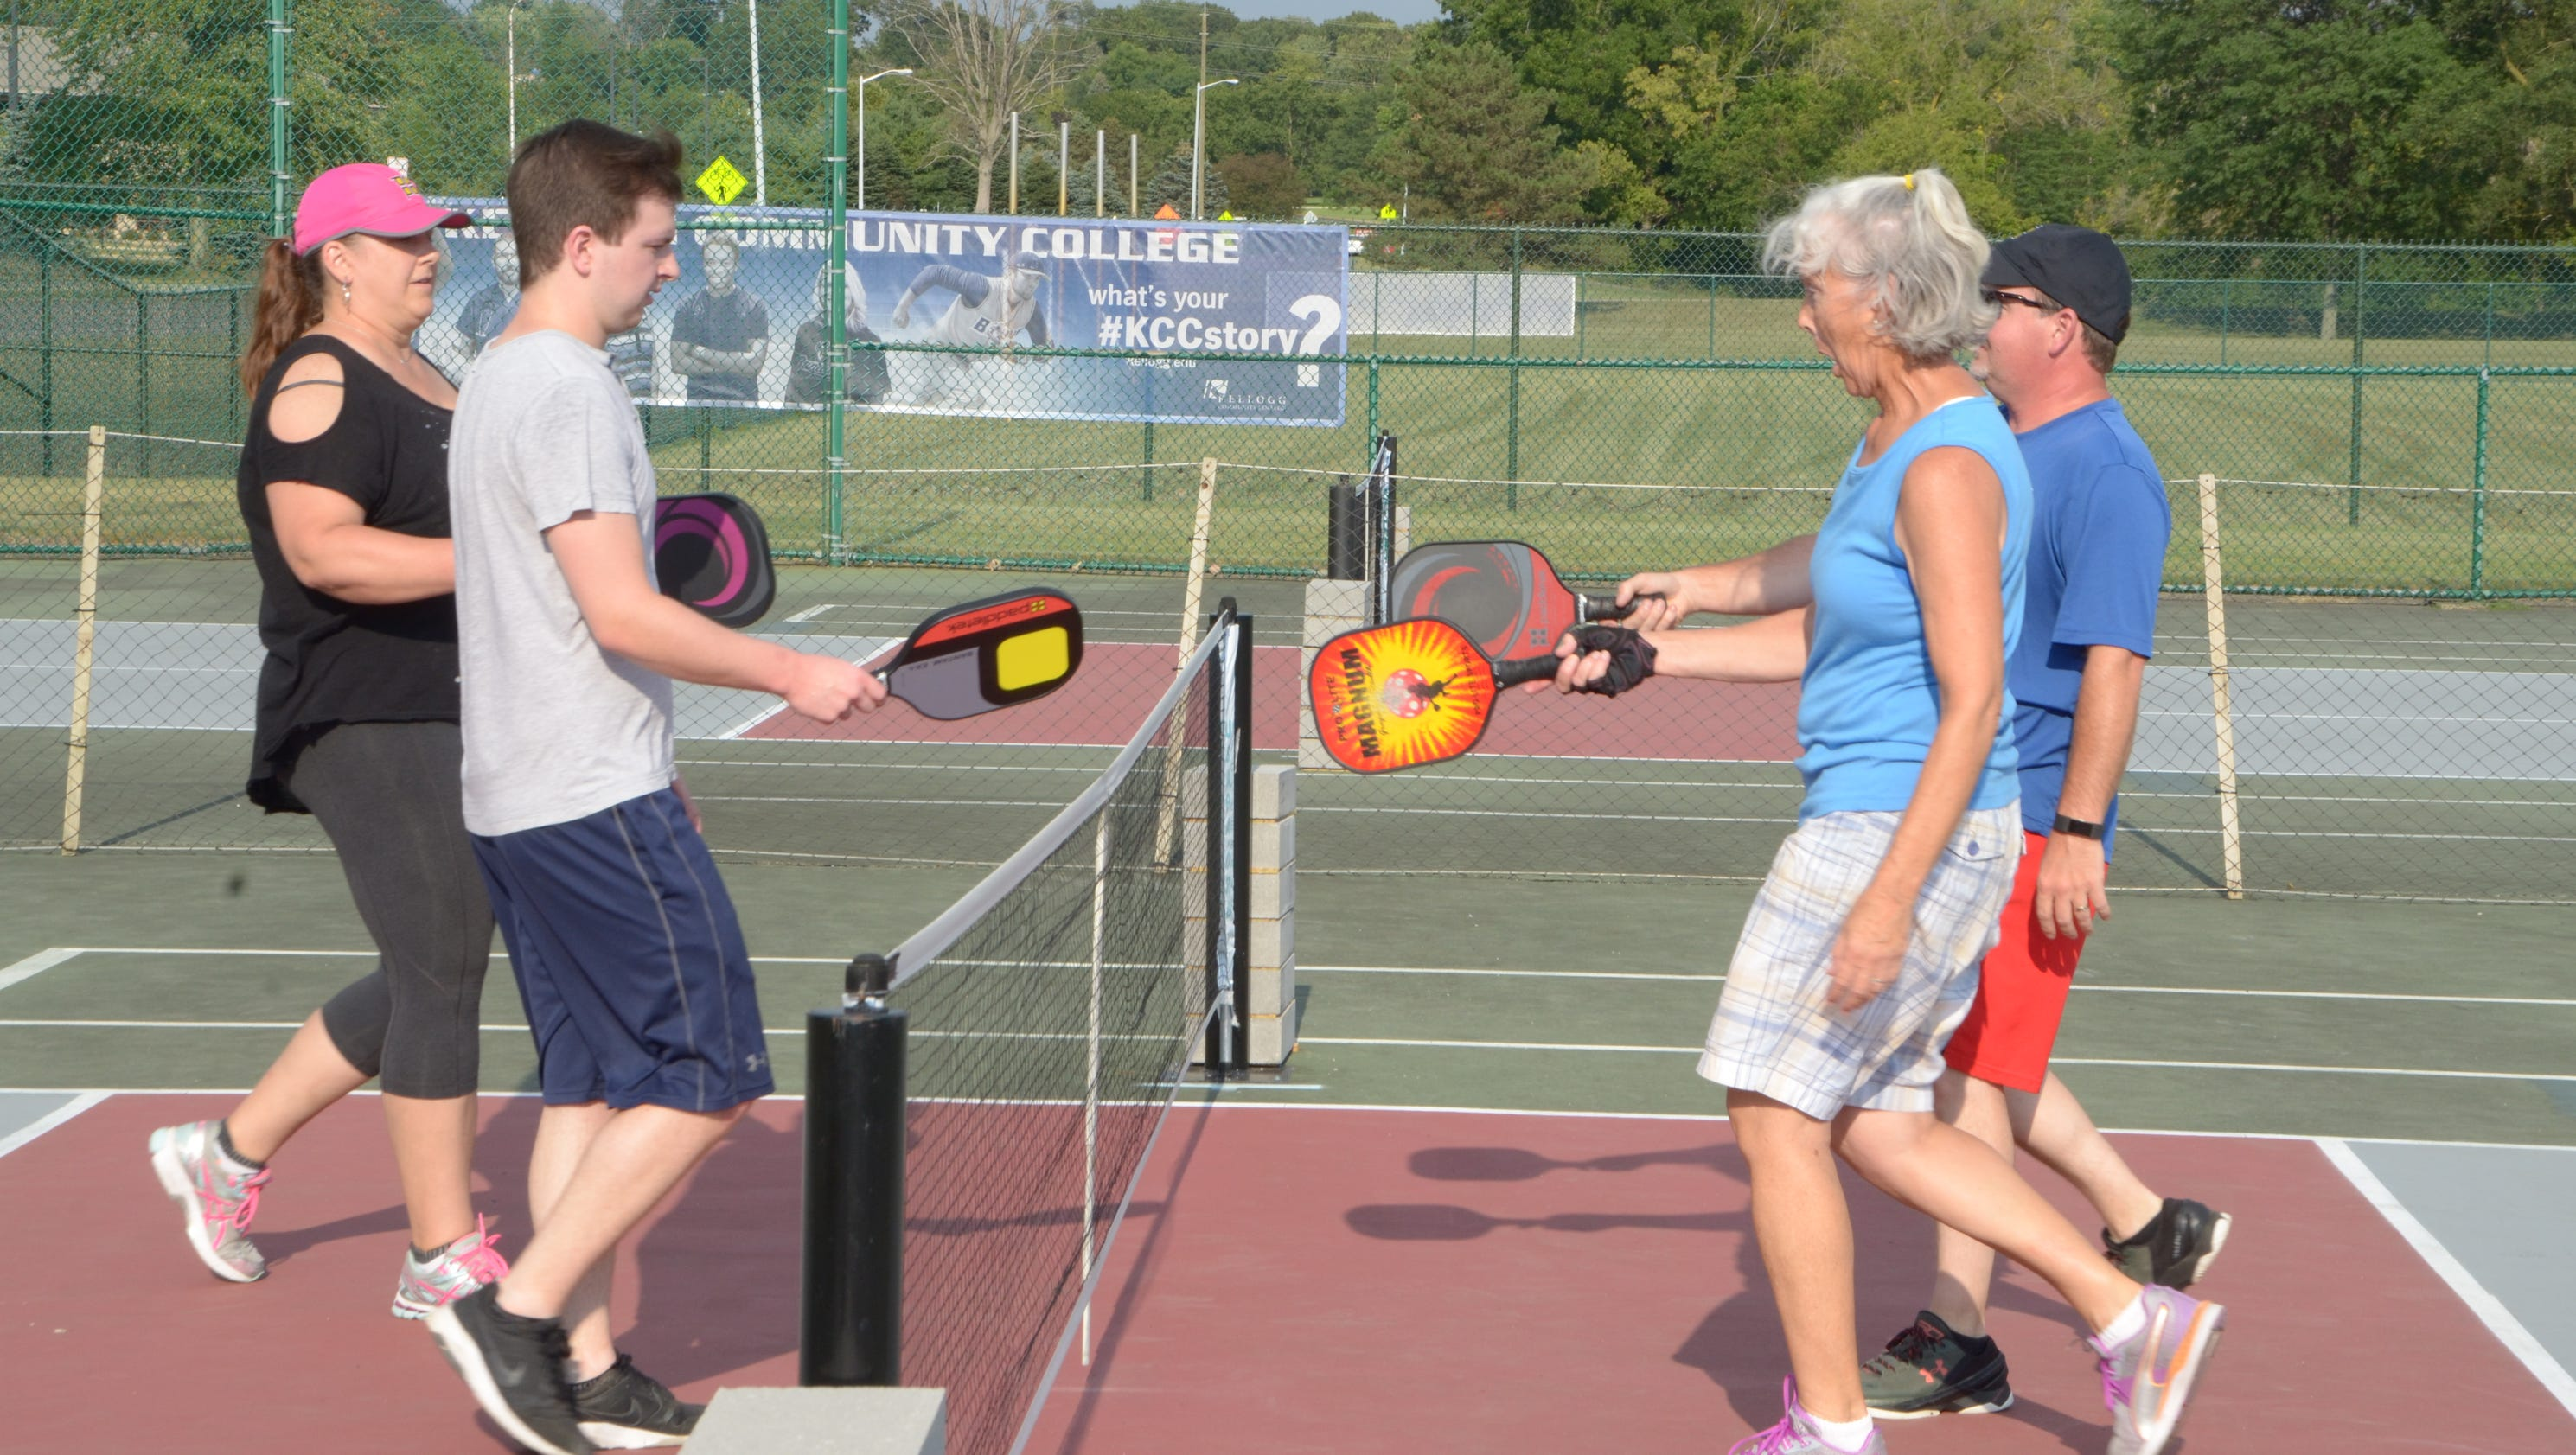 Pickleball: A sport for all ages